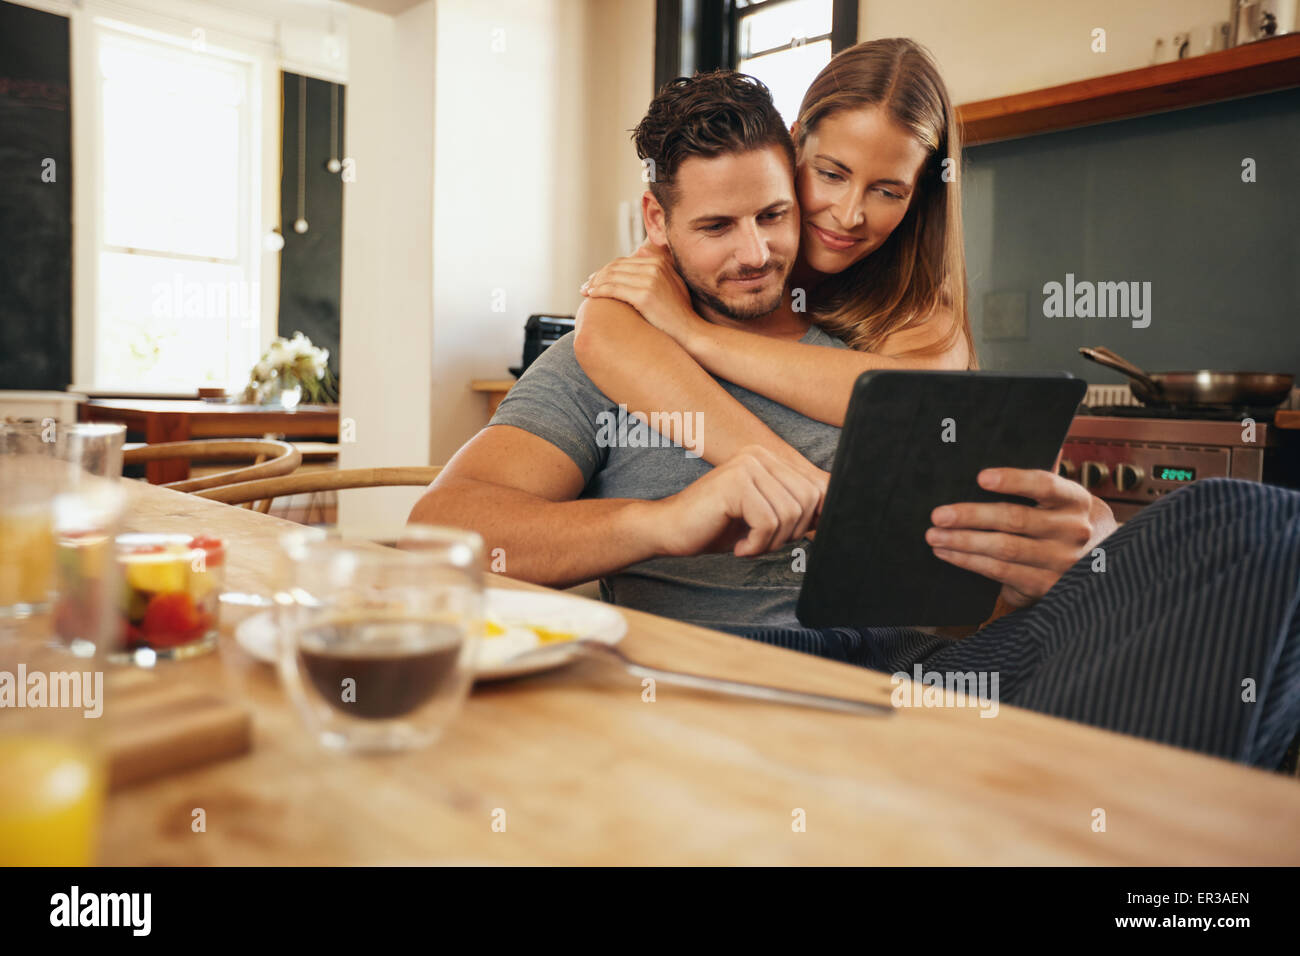 Indoor shot of young caucasian couple in the kitchen in the morning and using a digital tablet together. - Stock Image